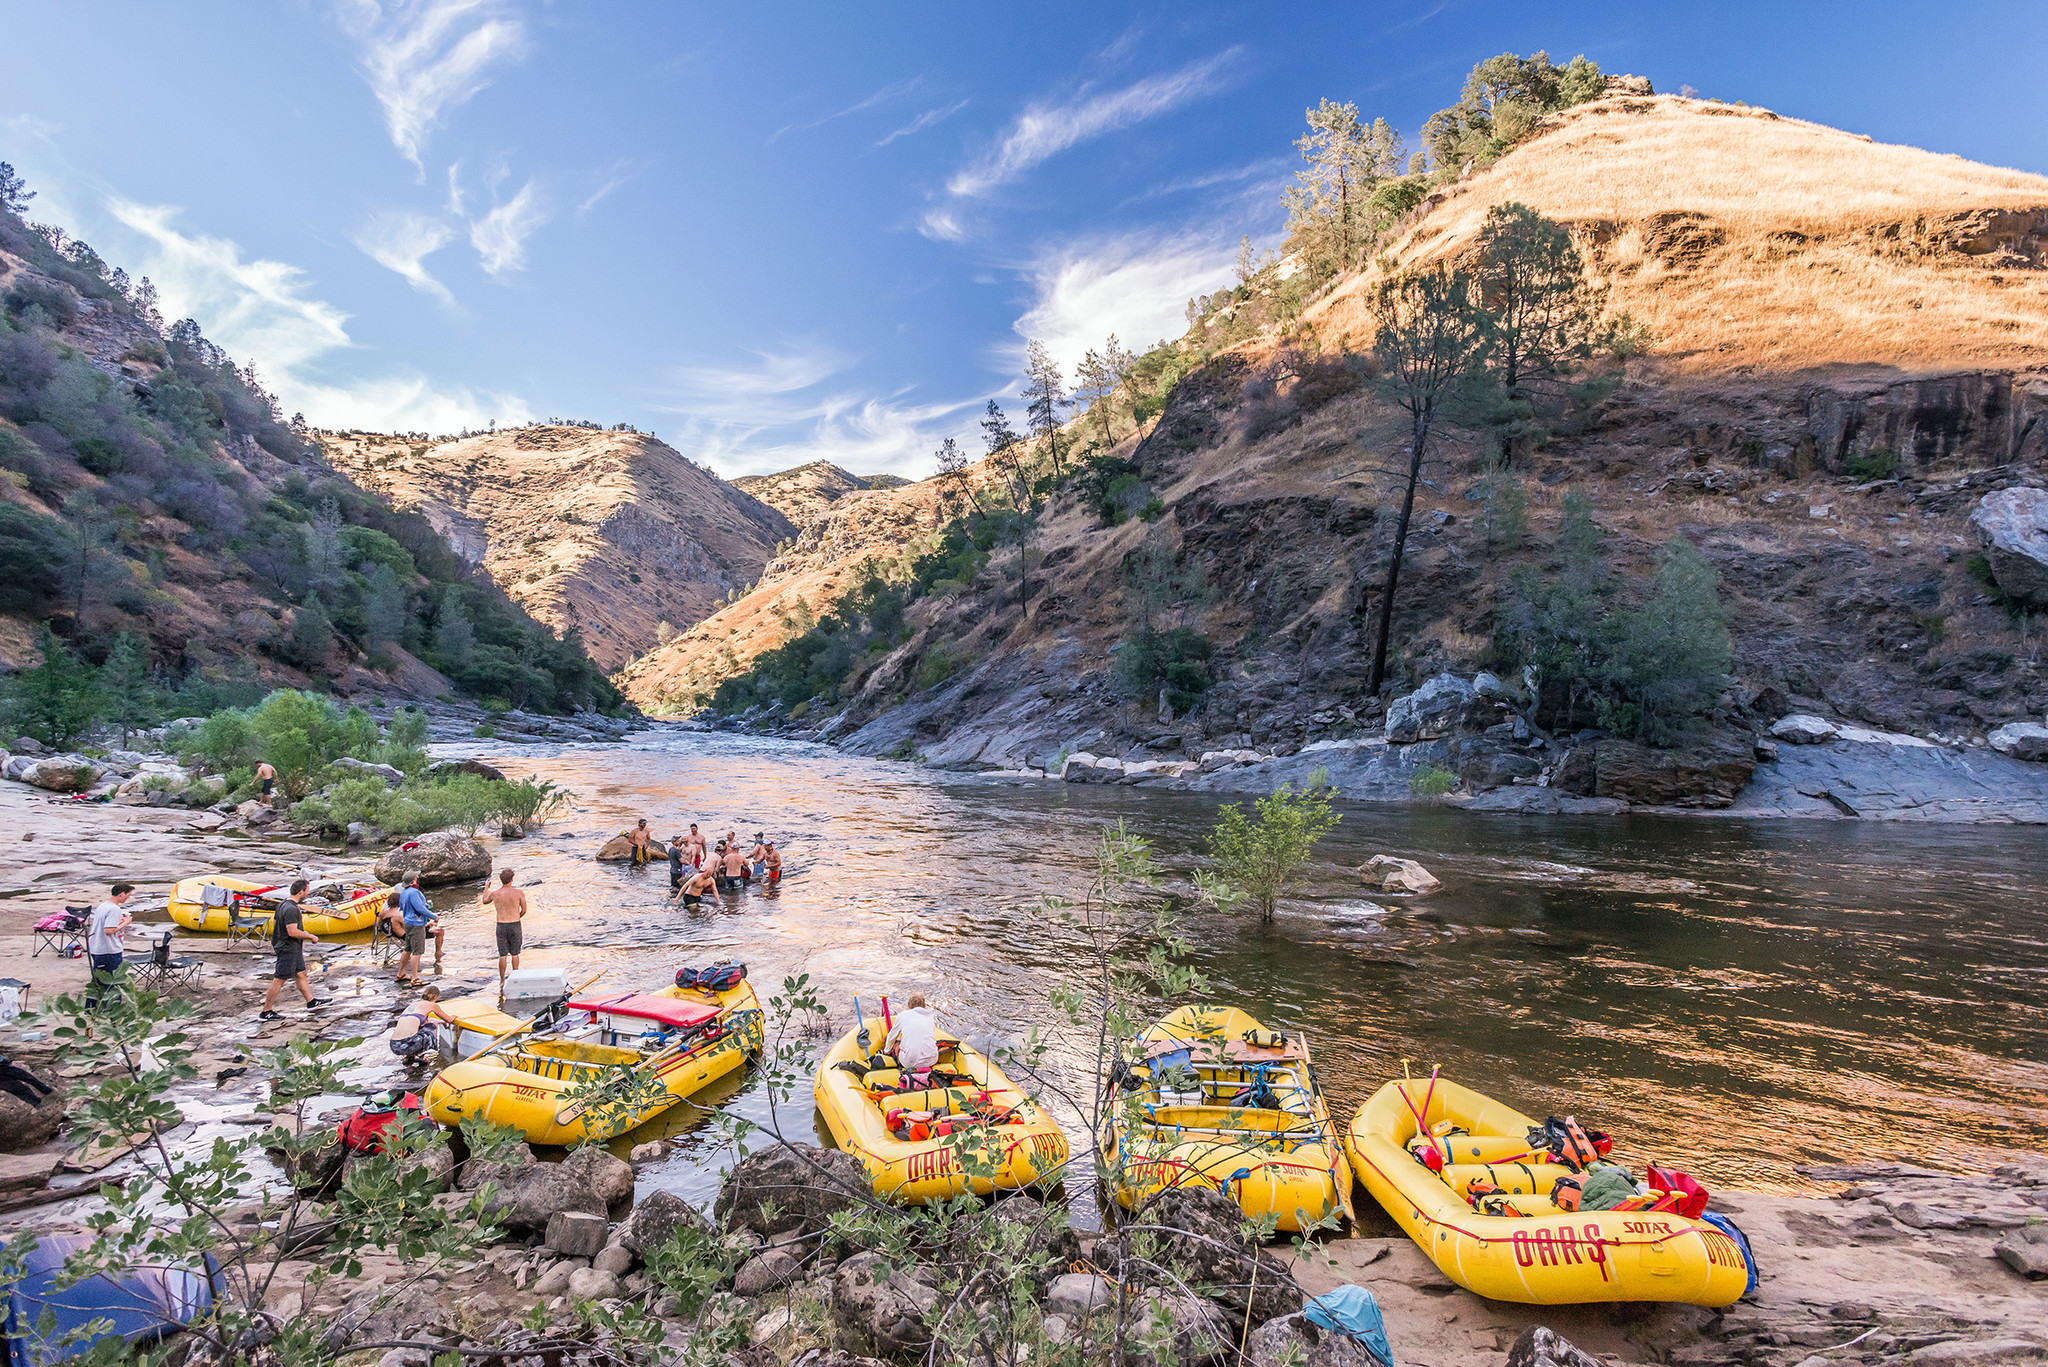 After a fun day of rafting on the Tuolumne River near Yosemite National Park, and a tasty dinner, a